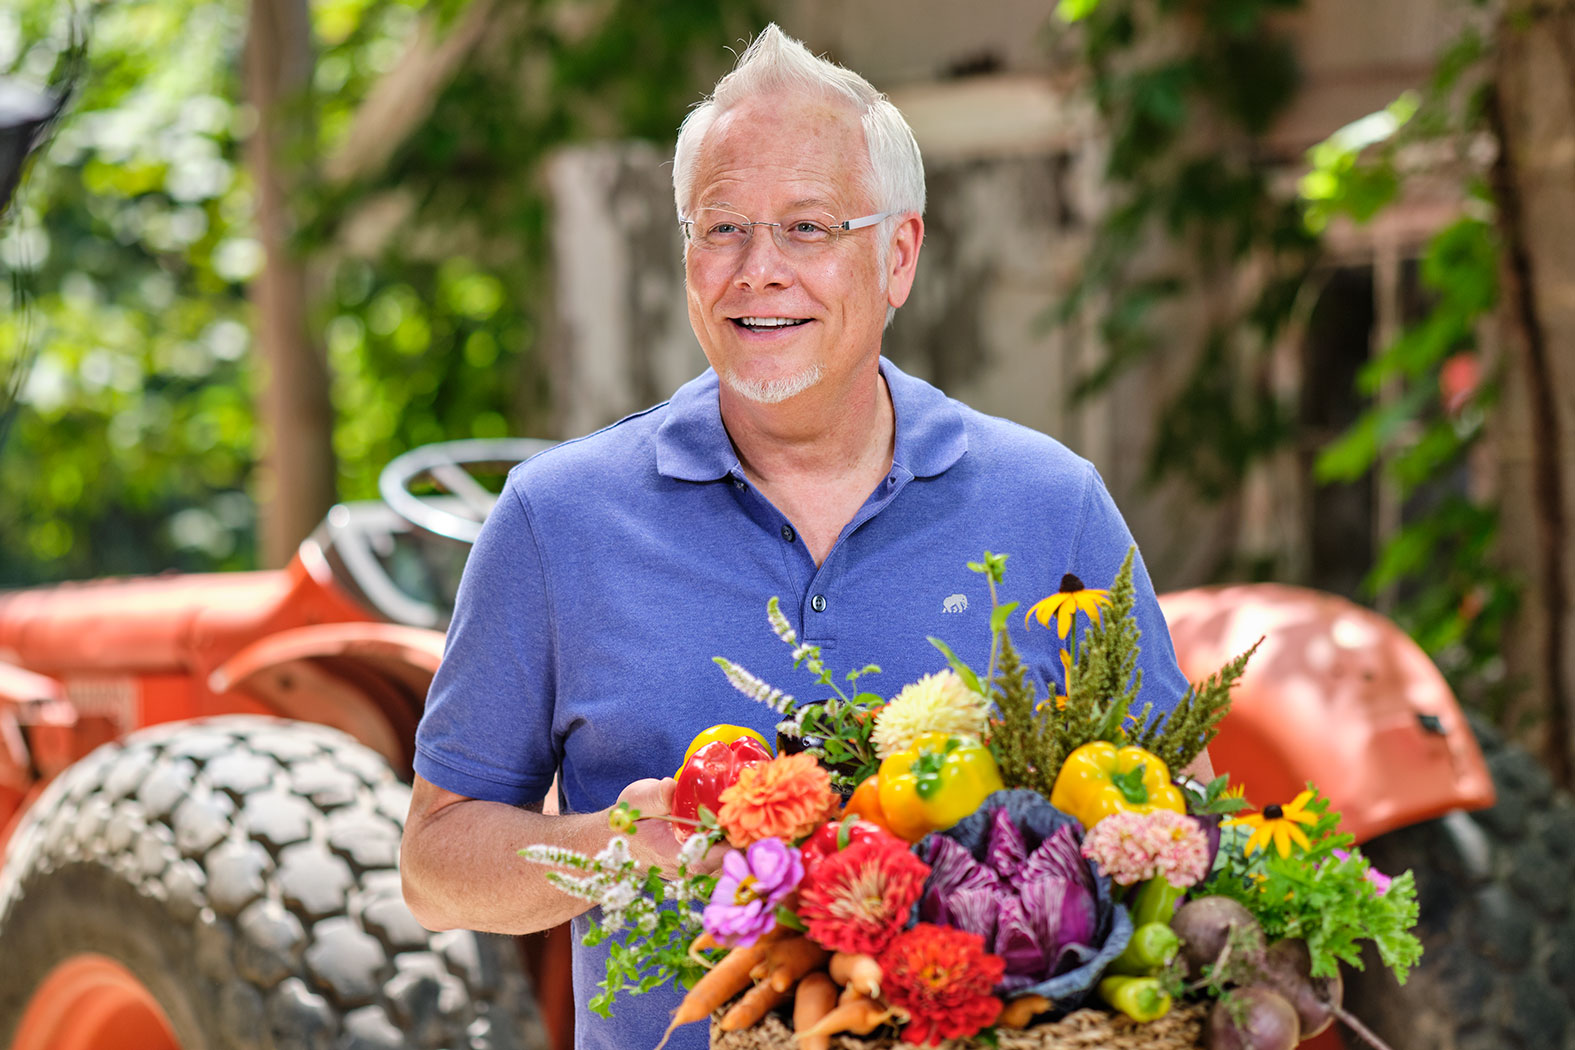 """""""Anything can be paired with Flowers"""" - quips J Schwanke- host of American Public Television's """"J Schwanke's Life in Bloom""""- here J creates a bouquet with Fresh Flowers and Produce- while visiting a local farm in Michigan!"""